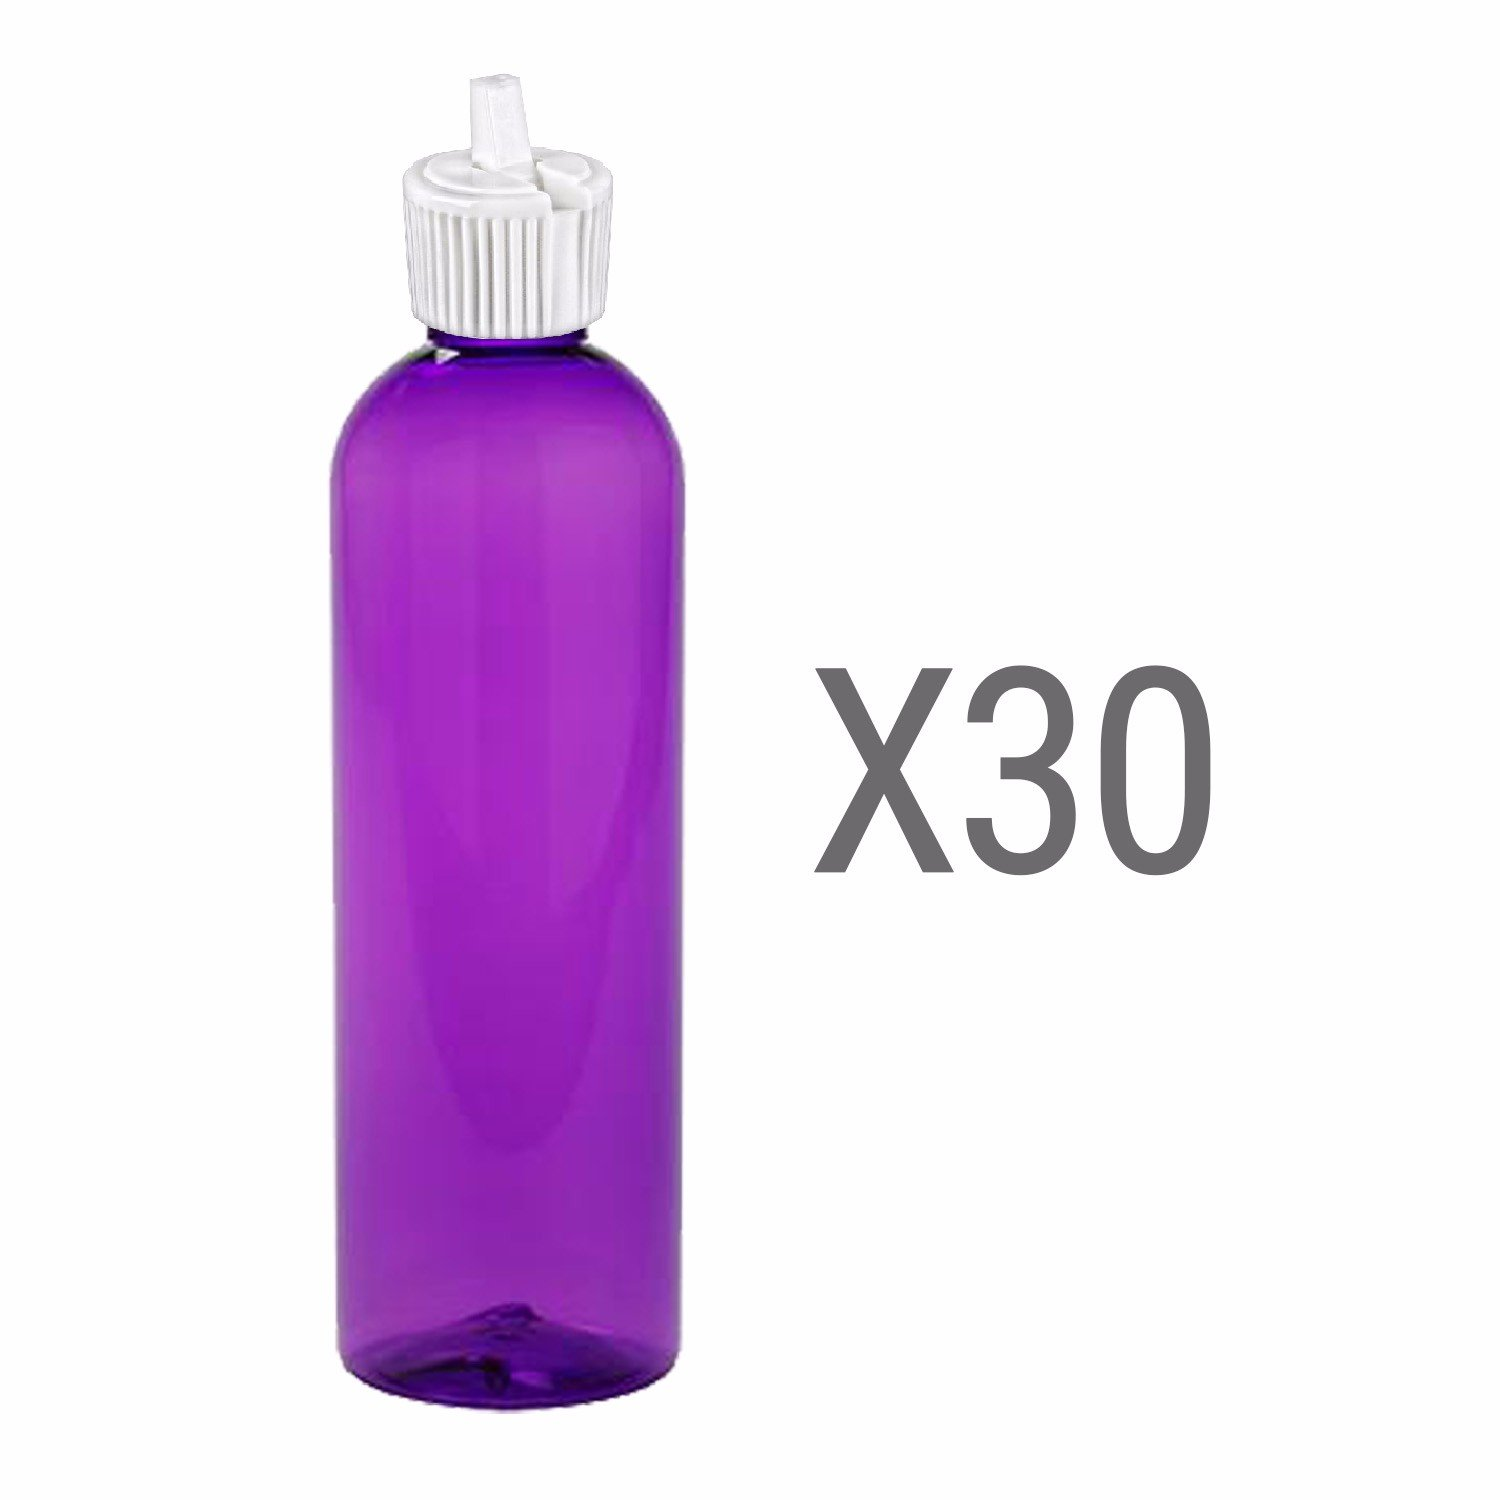 MoYo Natural Labs Turret Spout 8 oz Empty Liquid Bottle with Adjustable Dispenser Pack of 30, Purple